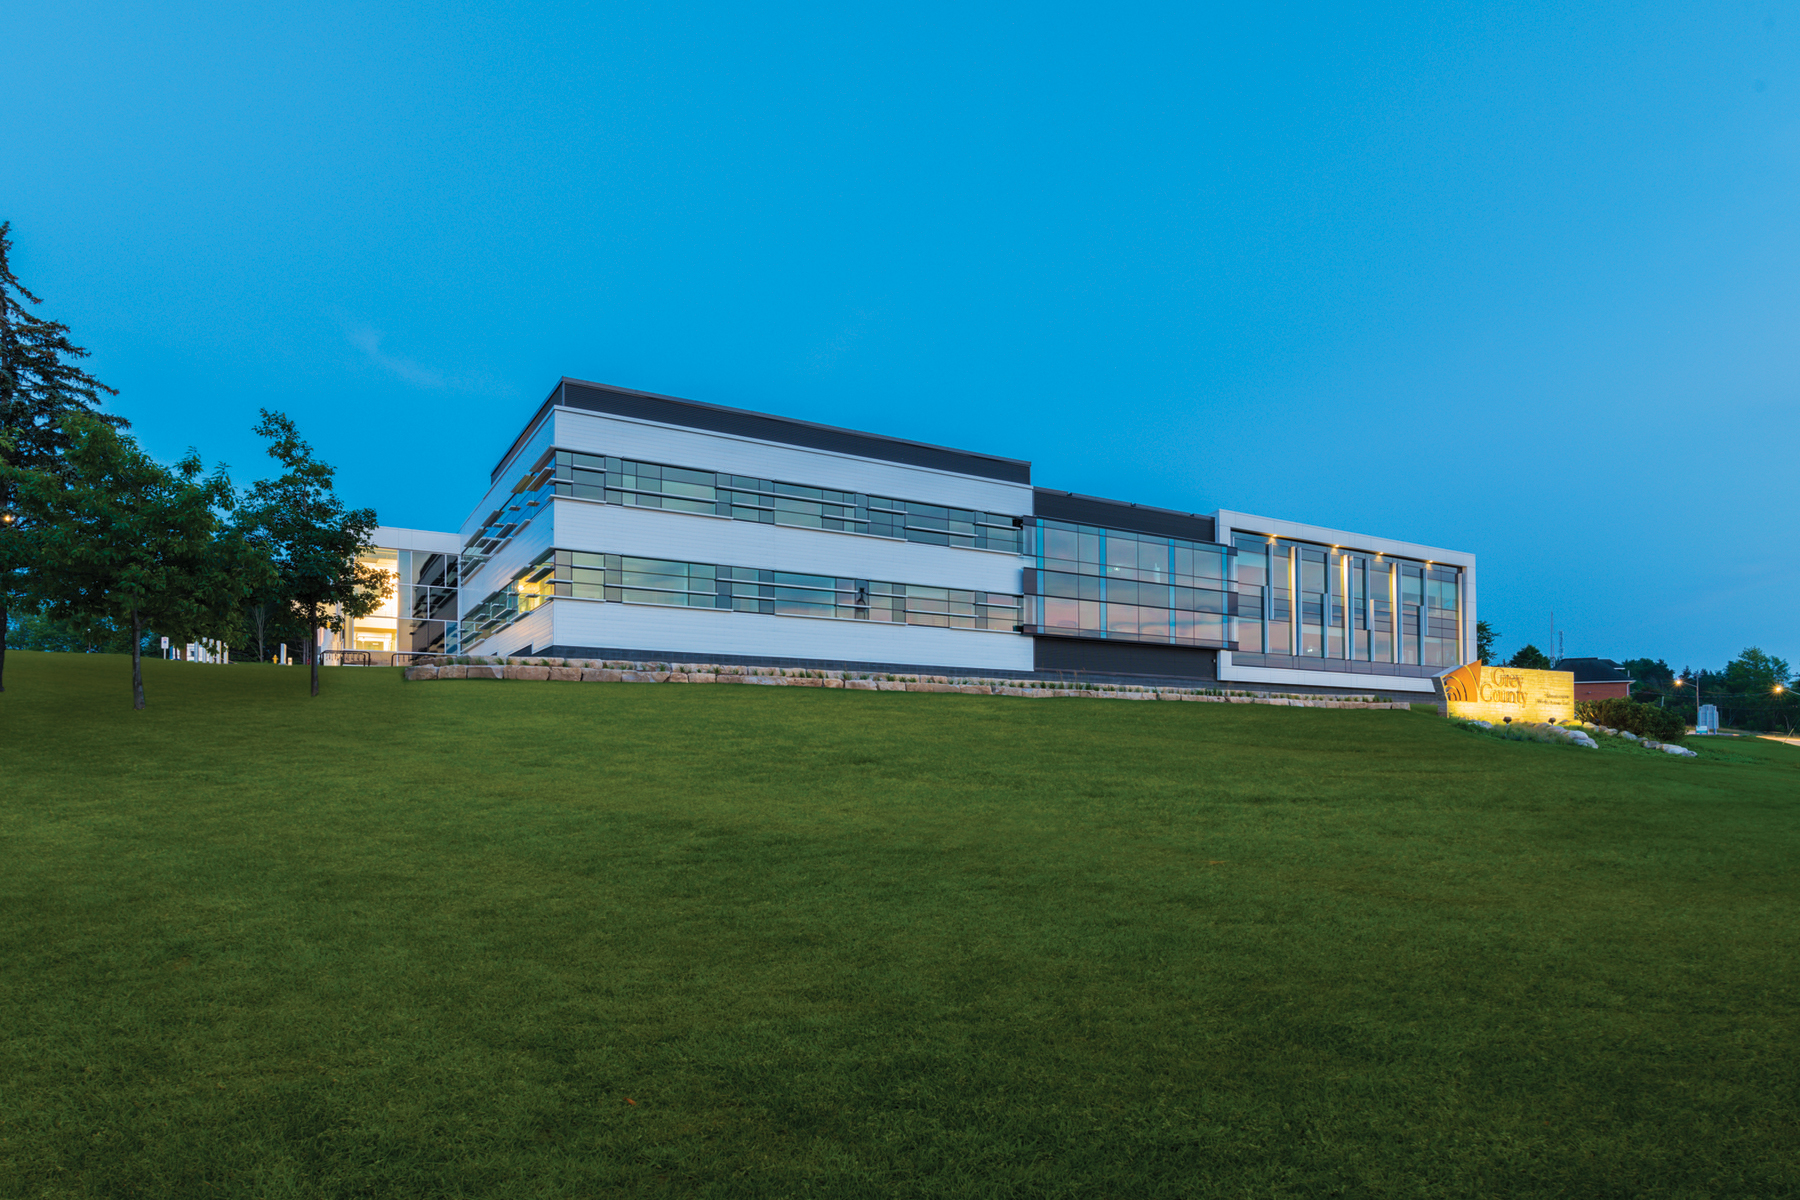 Elevation of glazed three storey building at dawn with blue sky and green grass